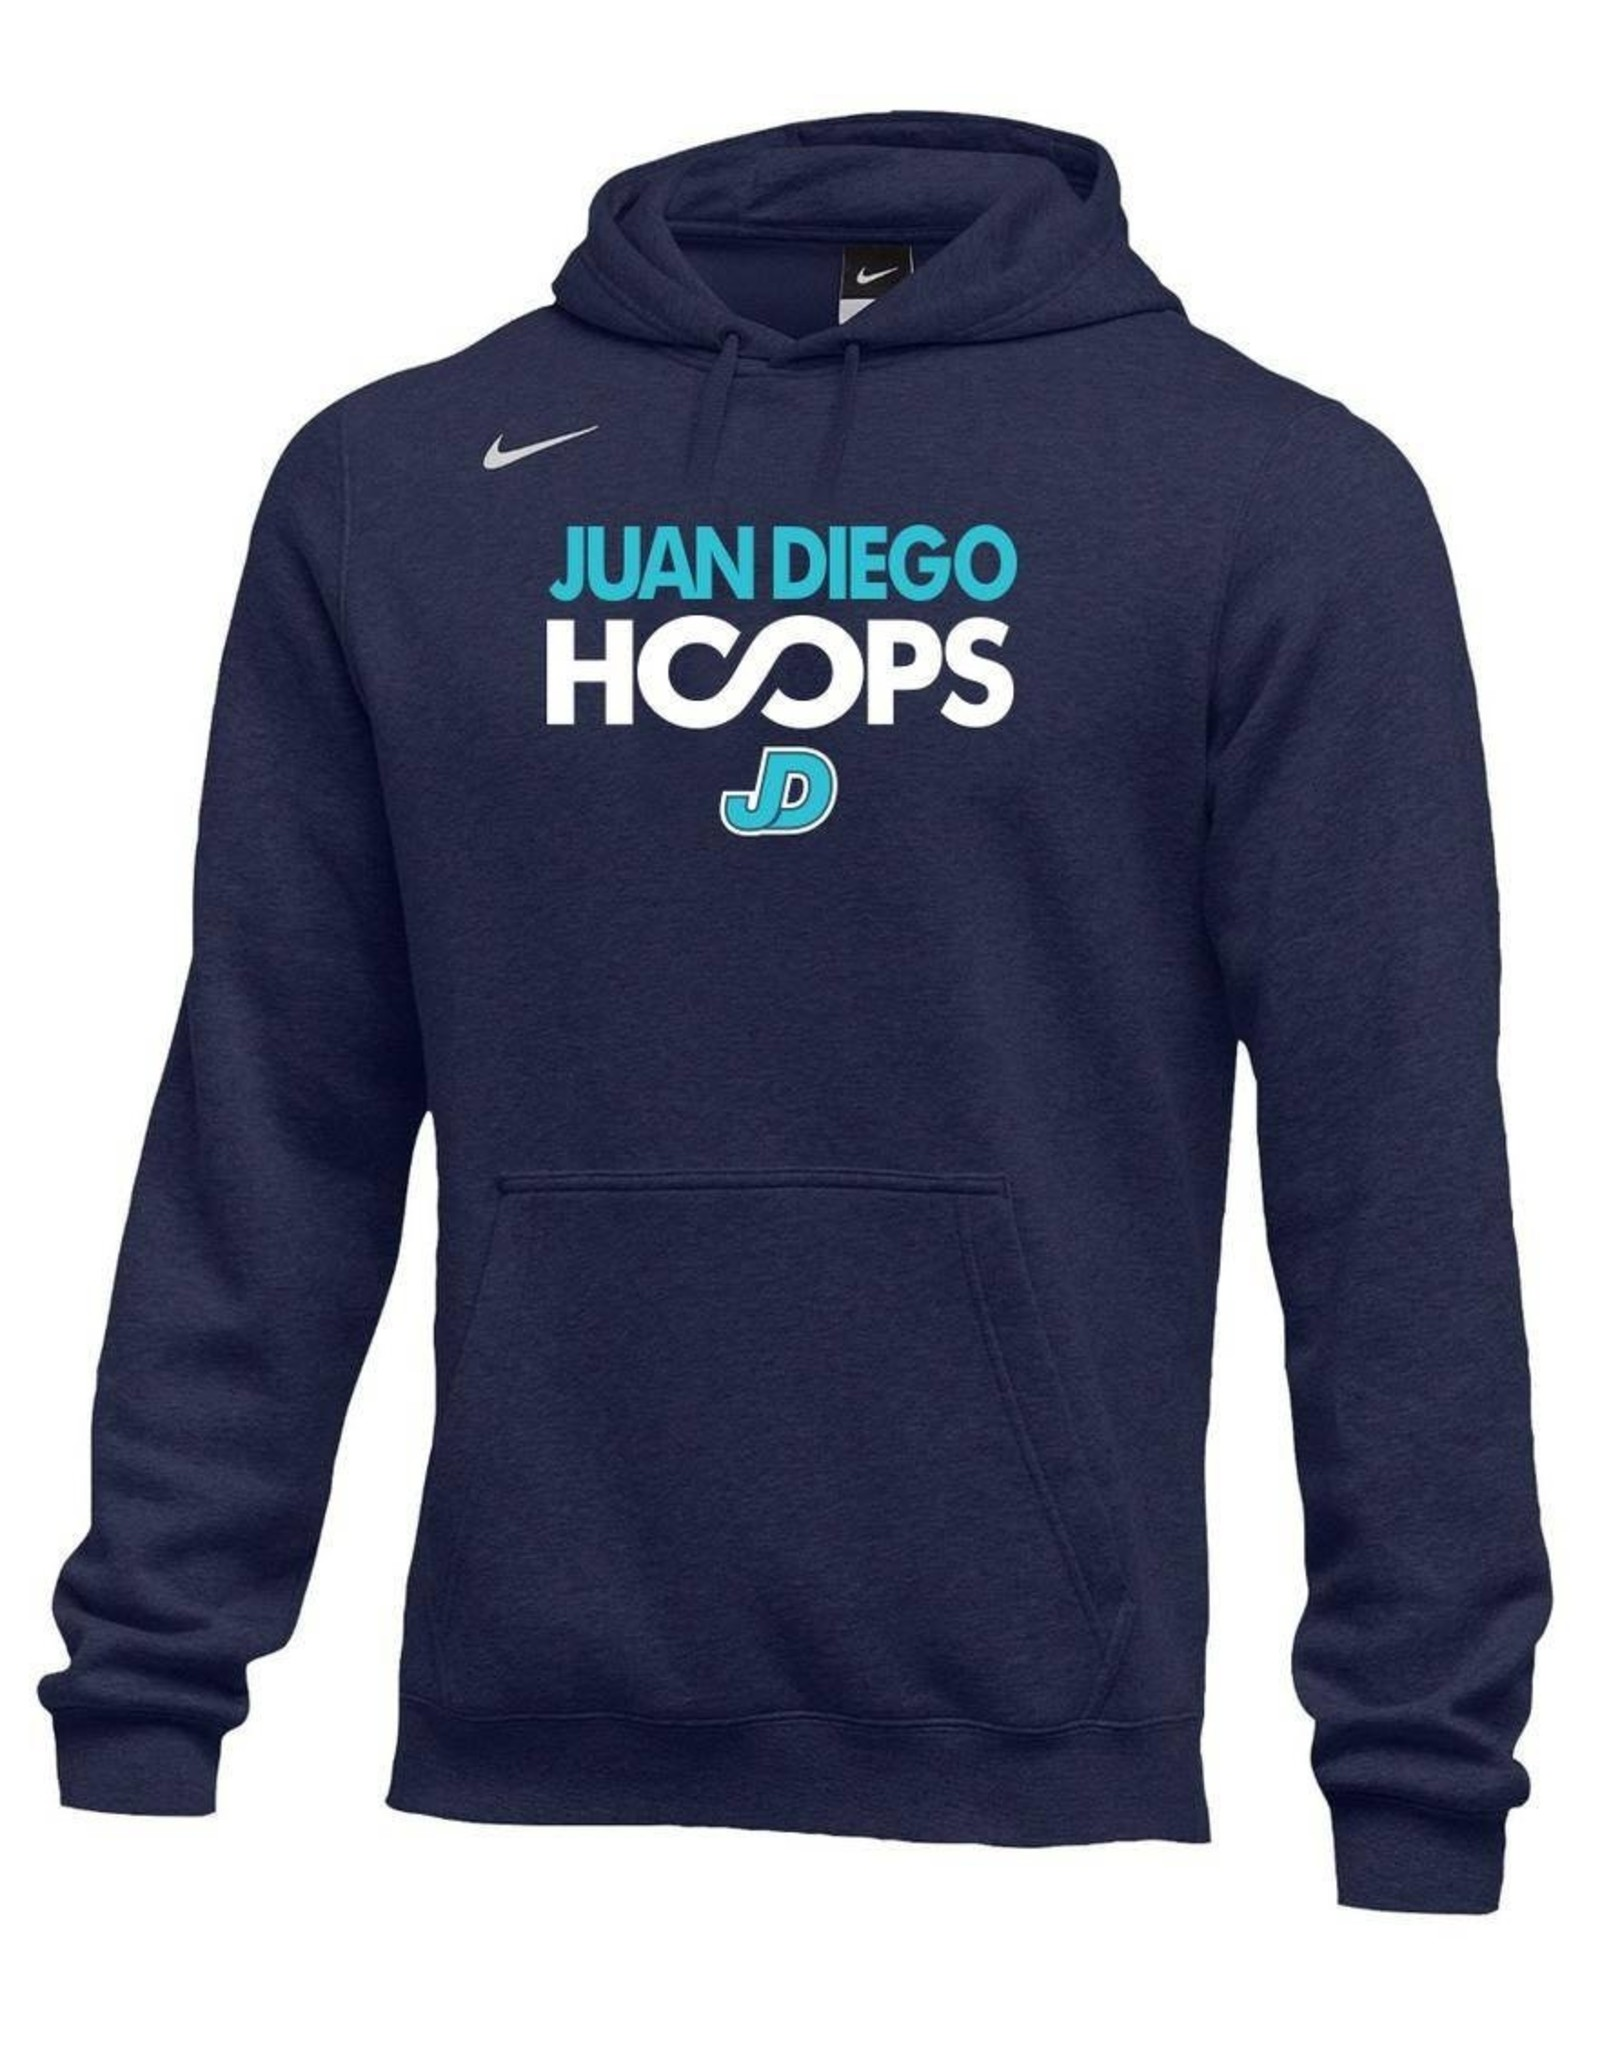 NON-UNIFORM JD Basketball Nike Hoops Hooded Sweatshirt